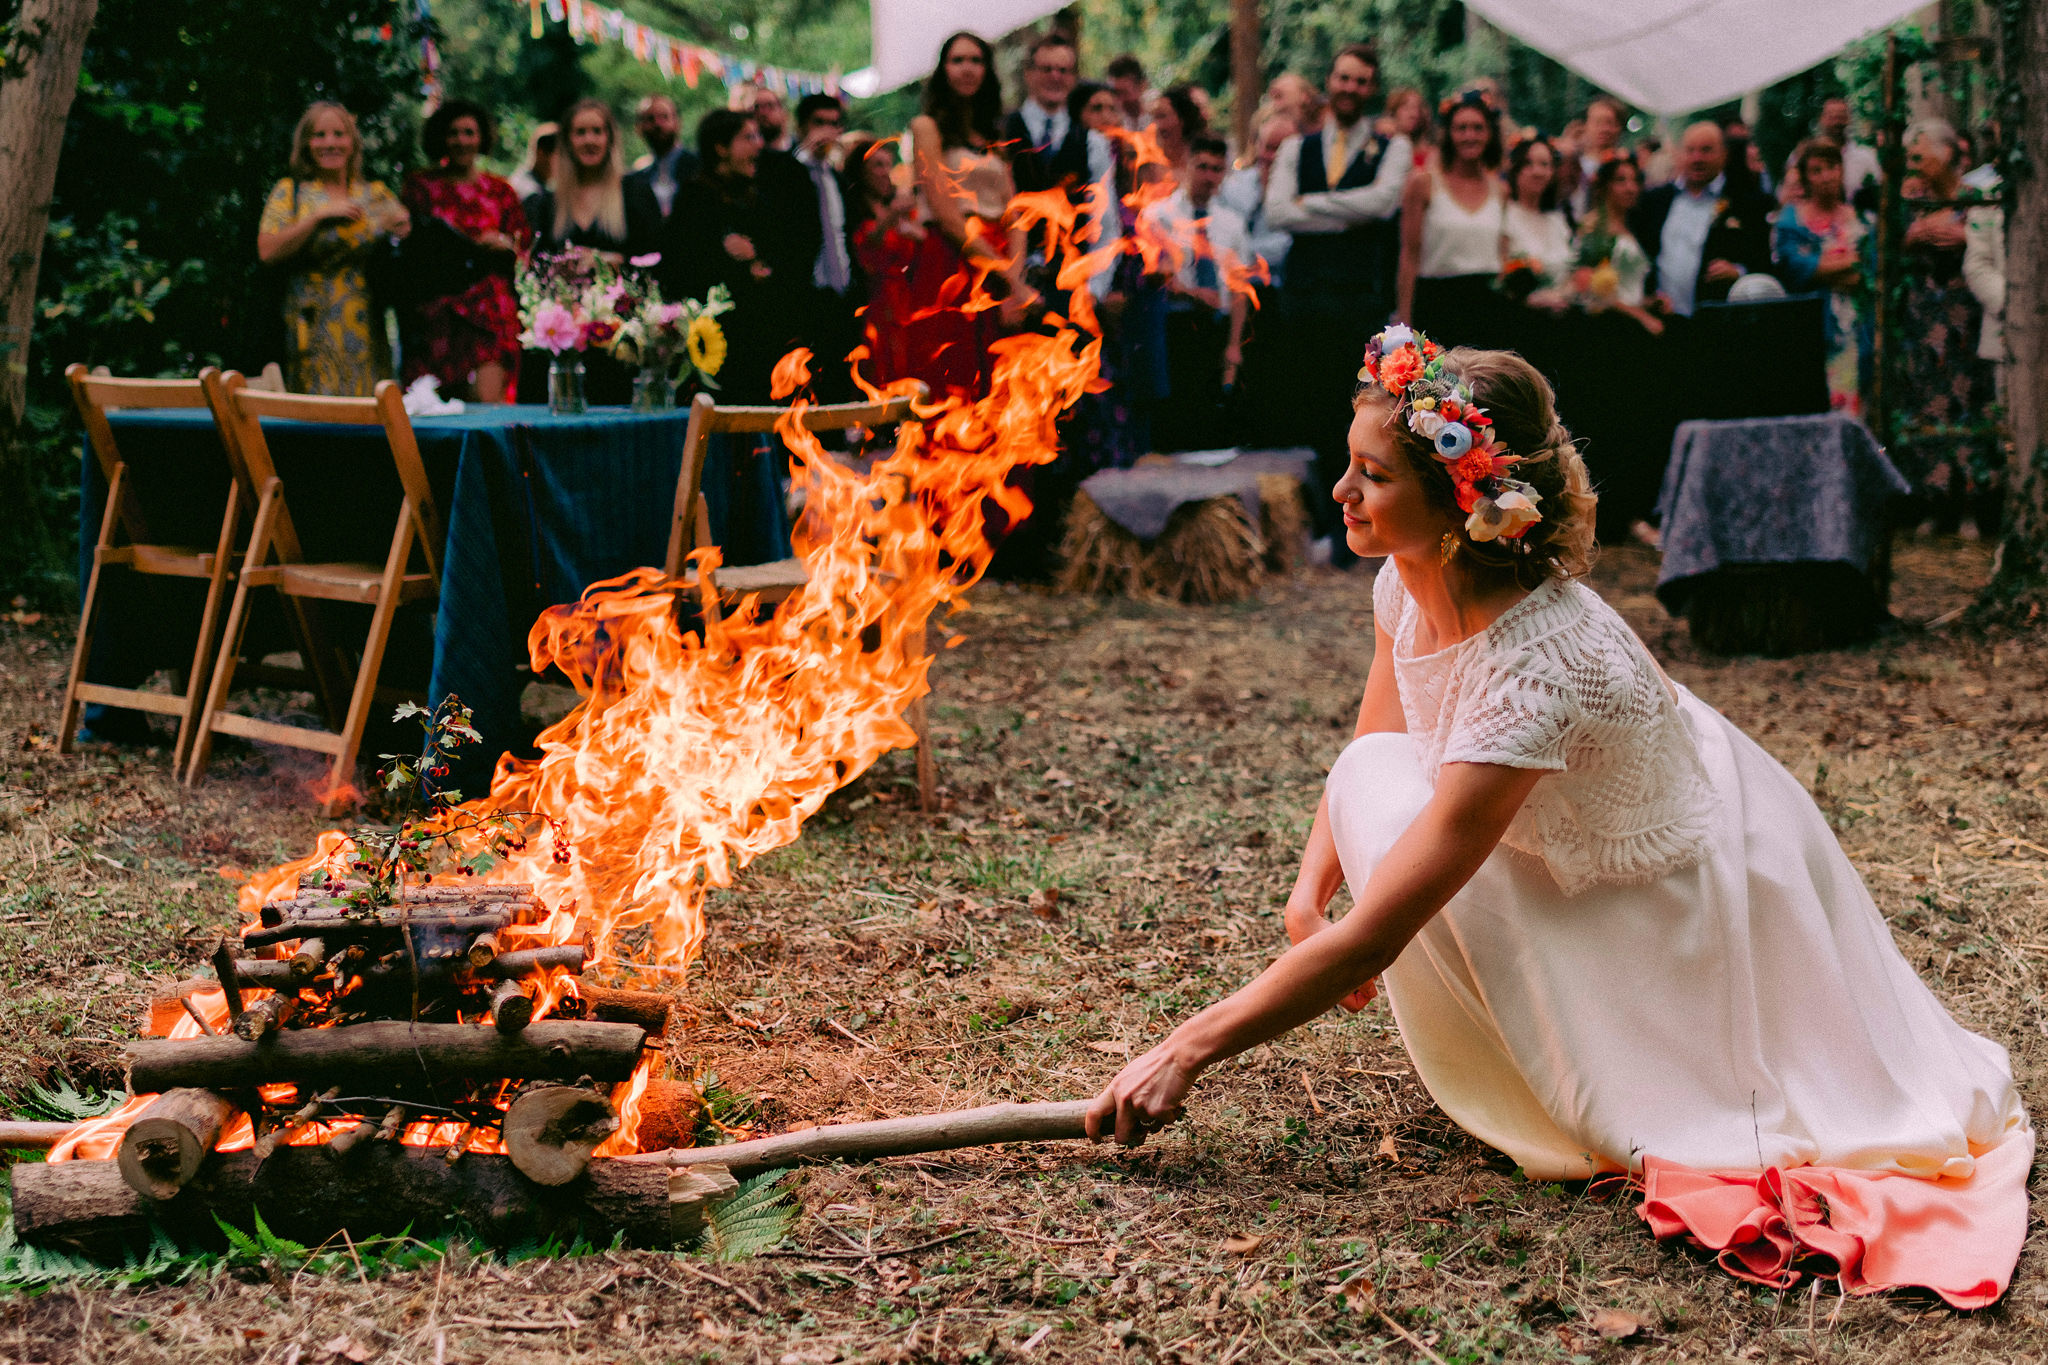 Bride in lace gown with floral crown stoking campfire - photo by Rich Howman - England